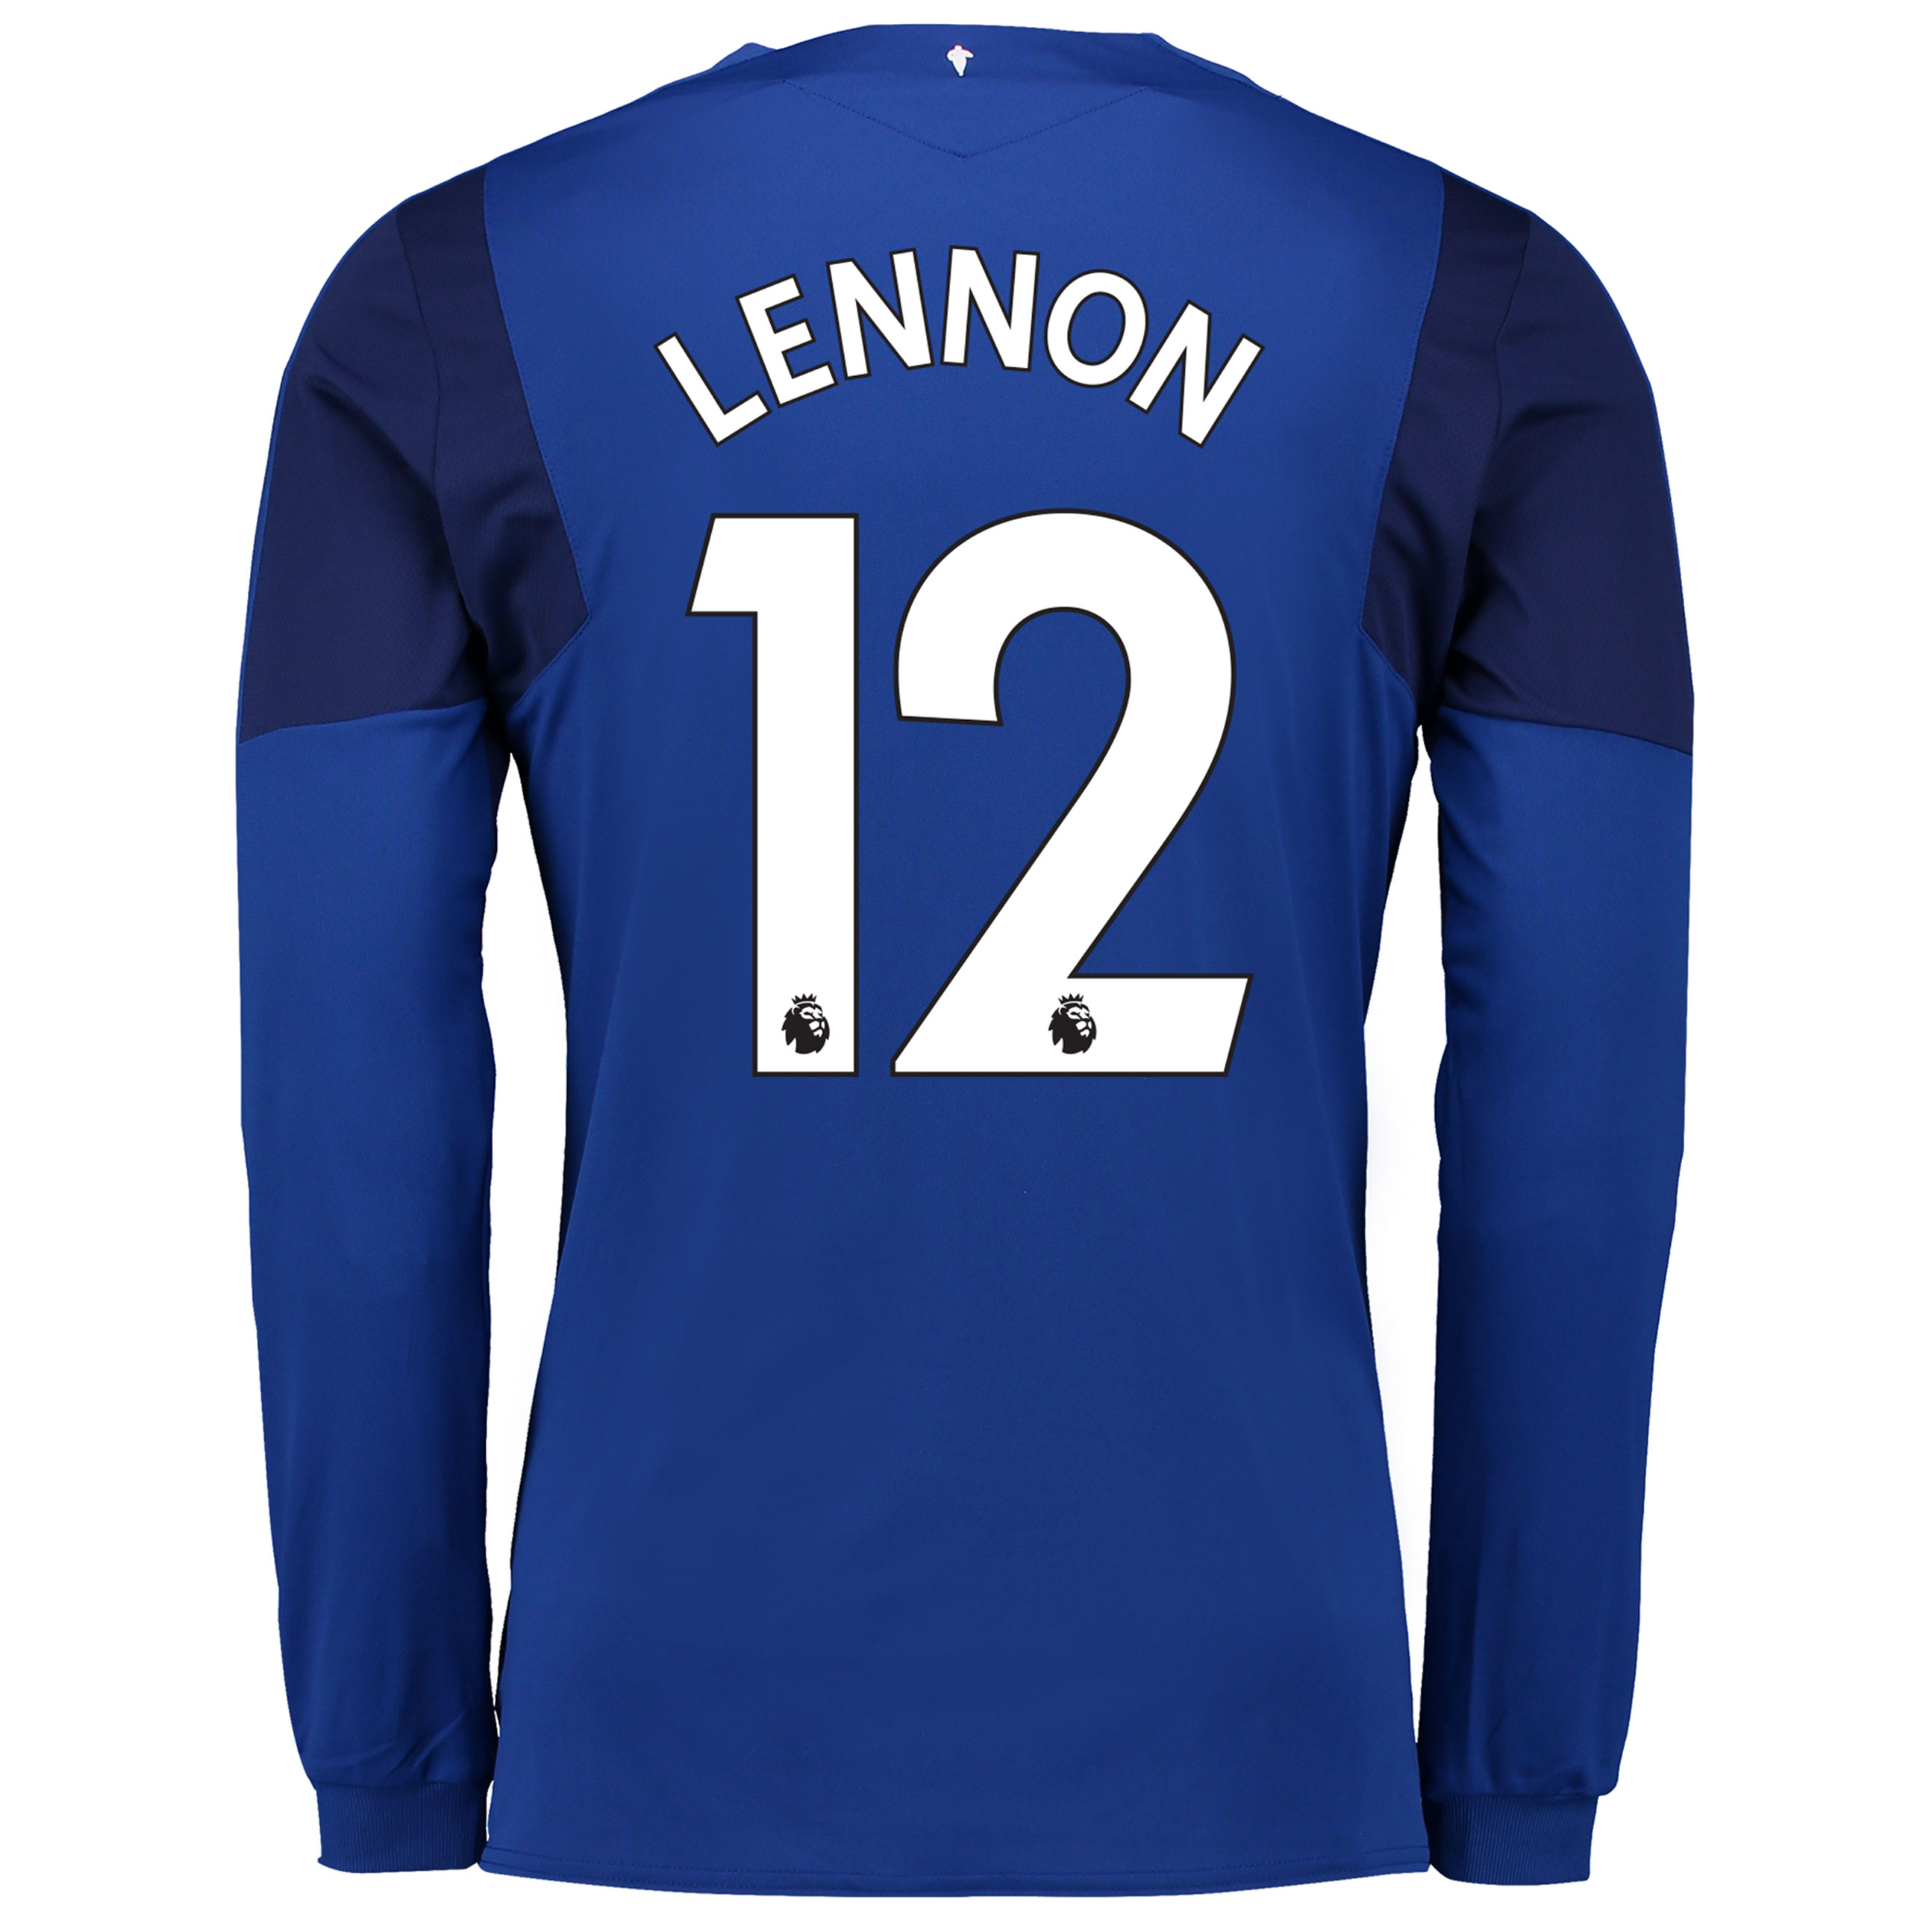 Everton Home Shirt 2017/18 - Junior - Long Sleeved with Lennon 12 prin